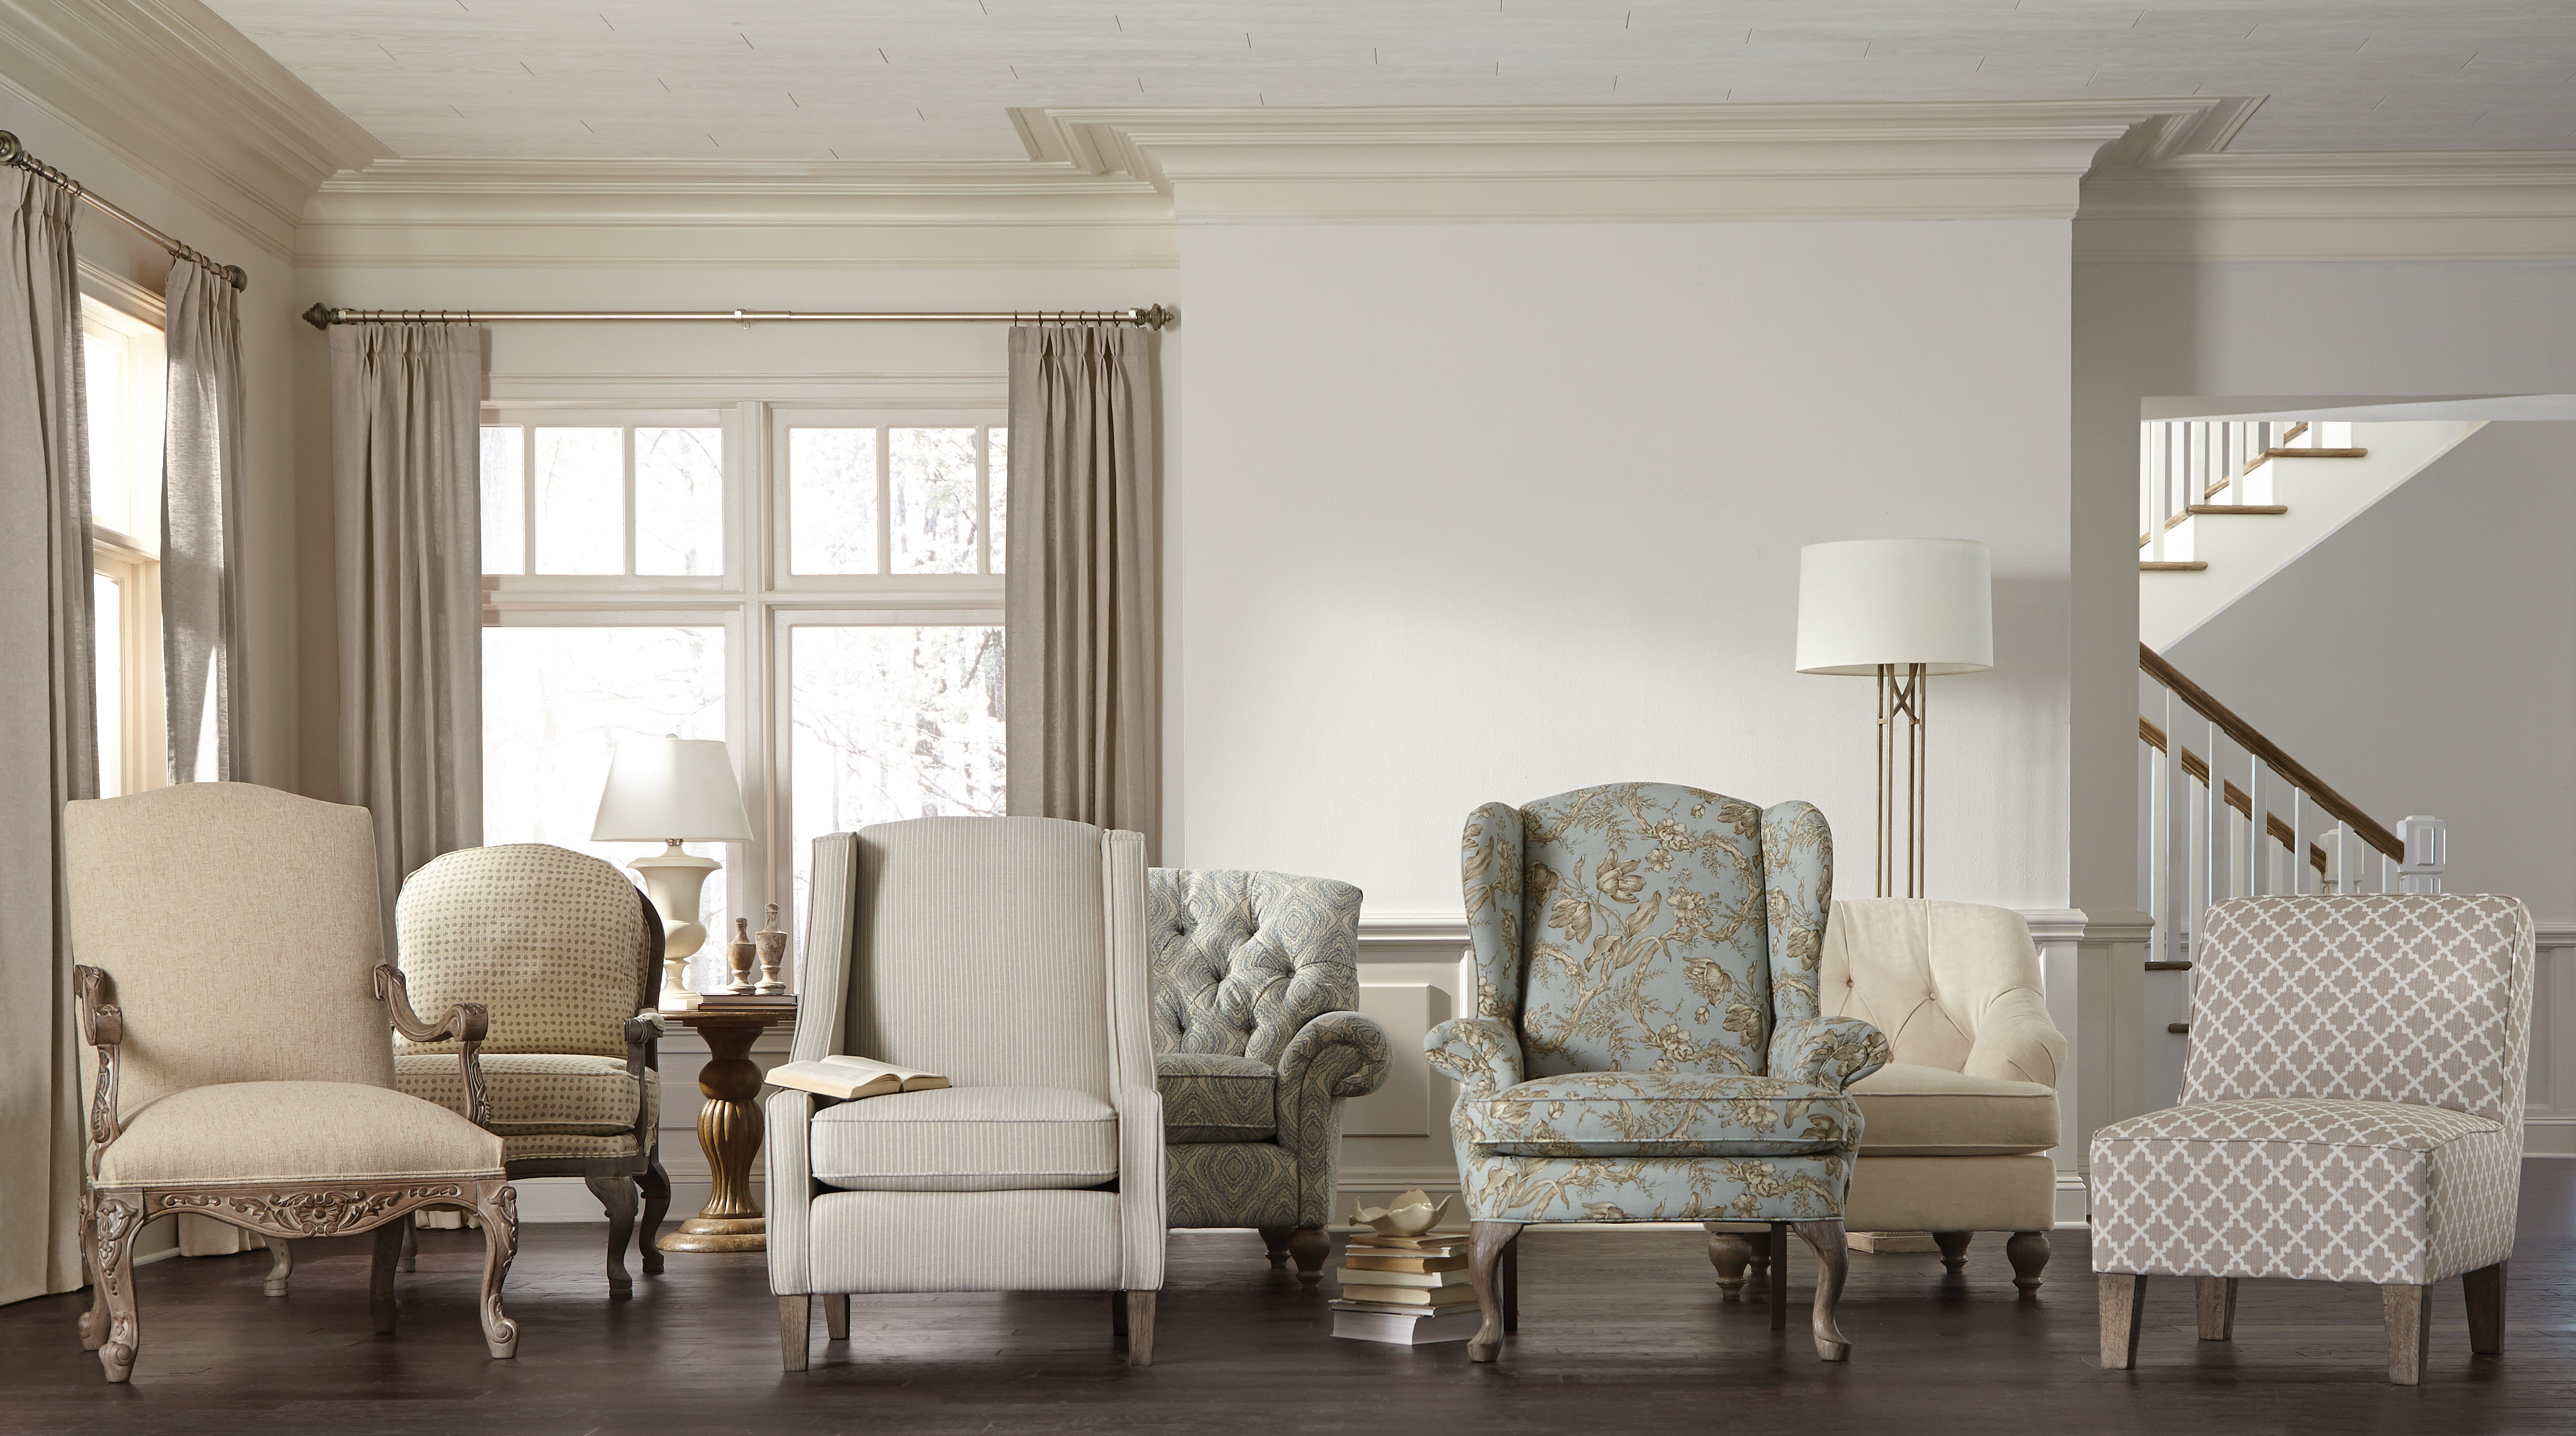 Acapulco chair living room - Best Home Furnishings